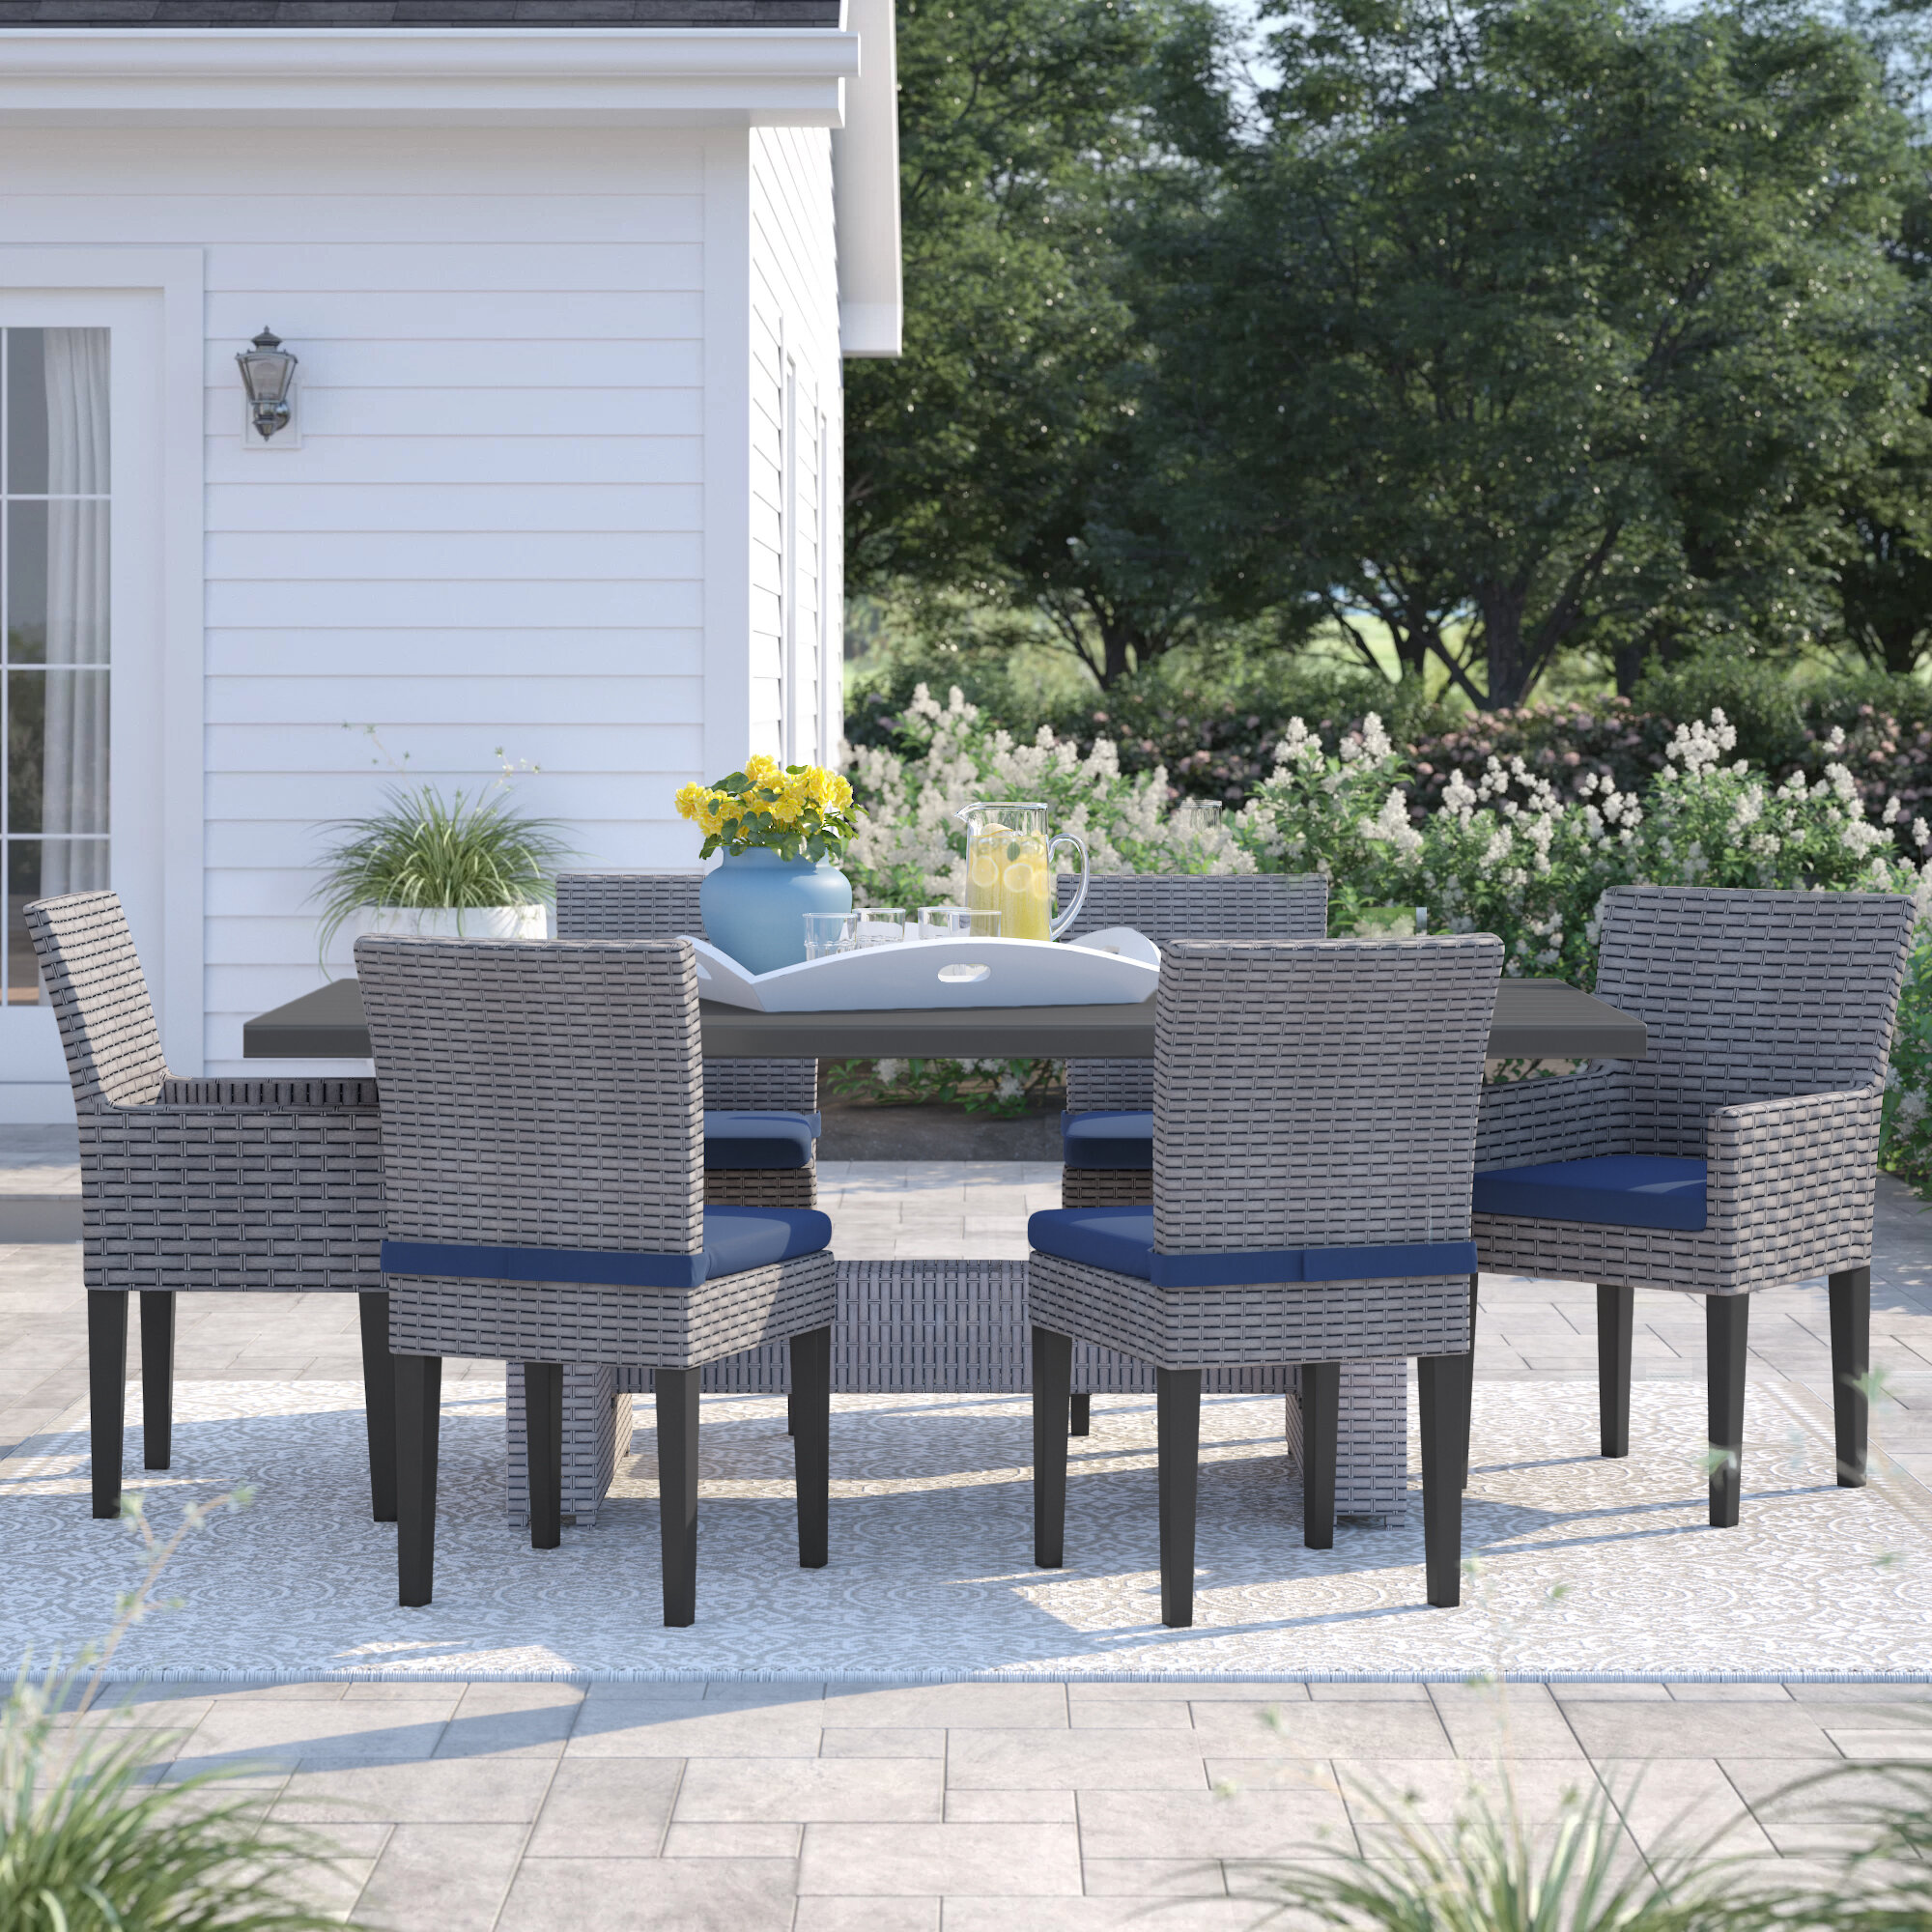 Sol 72 Outdoor Kenwick 7 Piece Outdoor Patio Dining Set With Cushions Reviews Wayfair